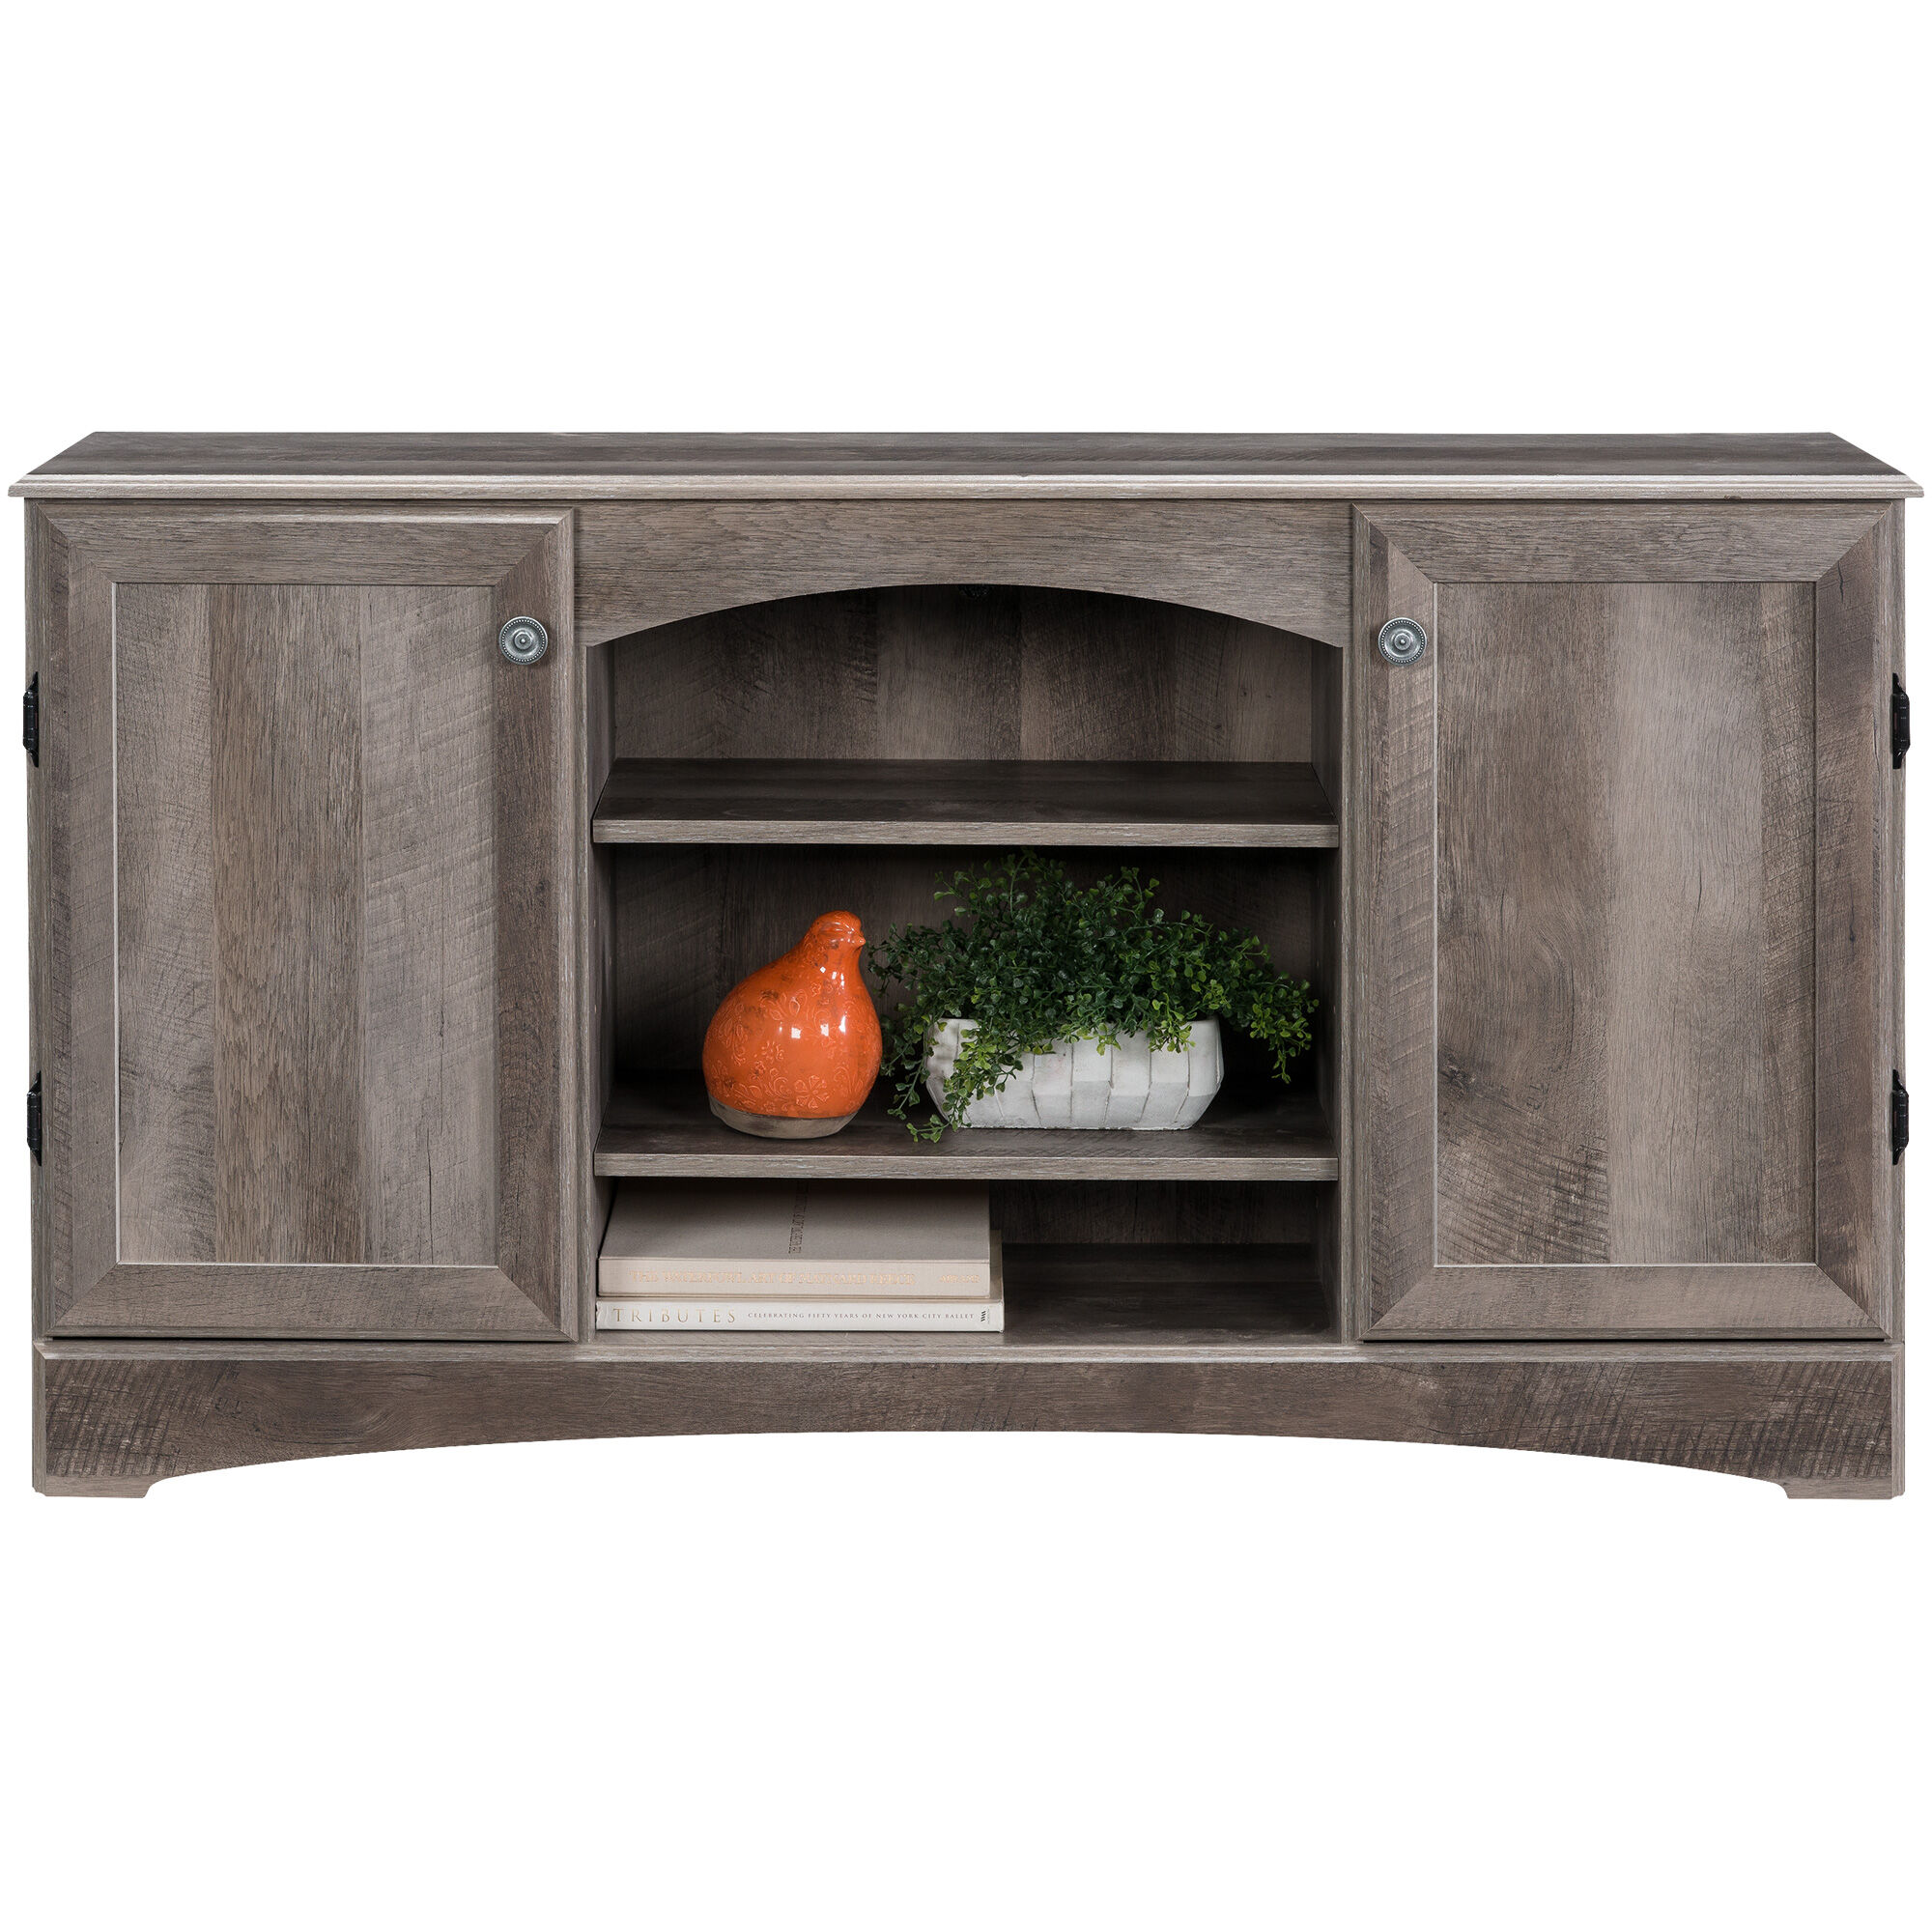 oak furniture land living room sets yellow gray and brown slumberland | hastings console